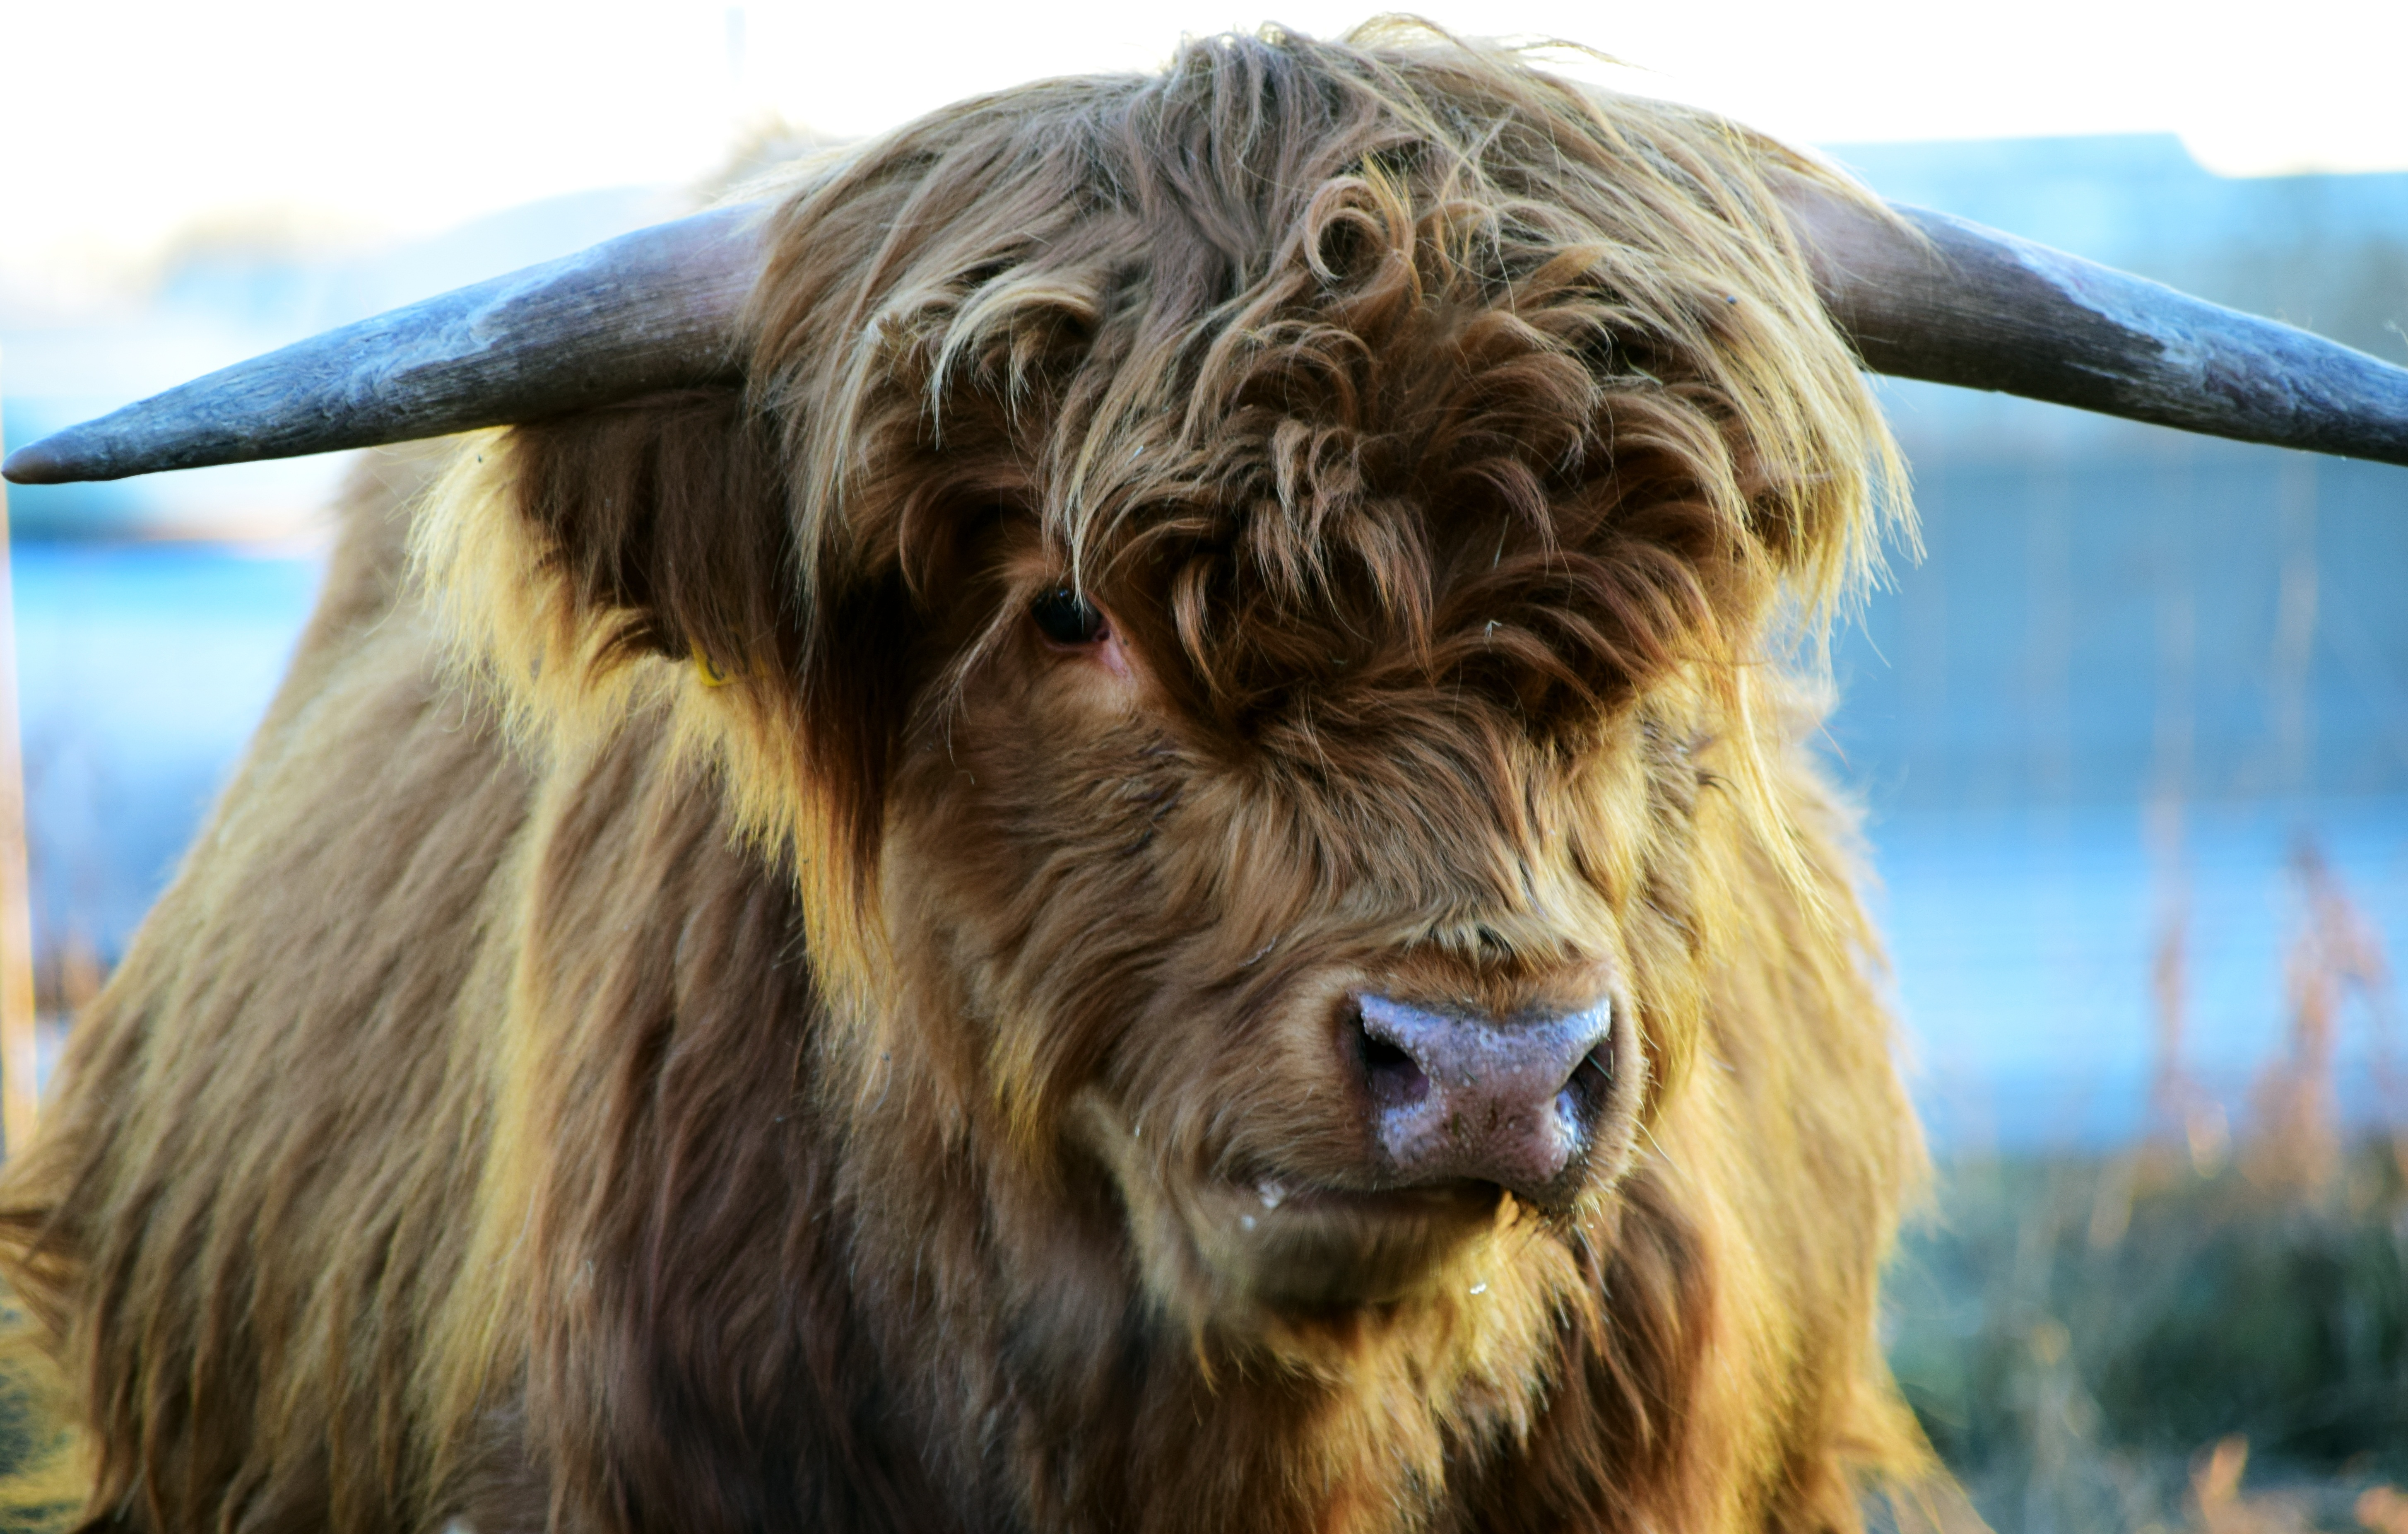 102117 download wallpaper Animals, Highland, Cow, Horns screensavers and pictures for free